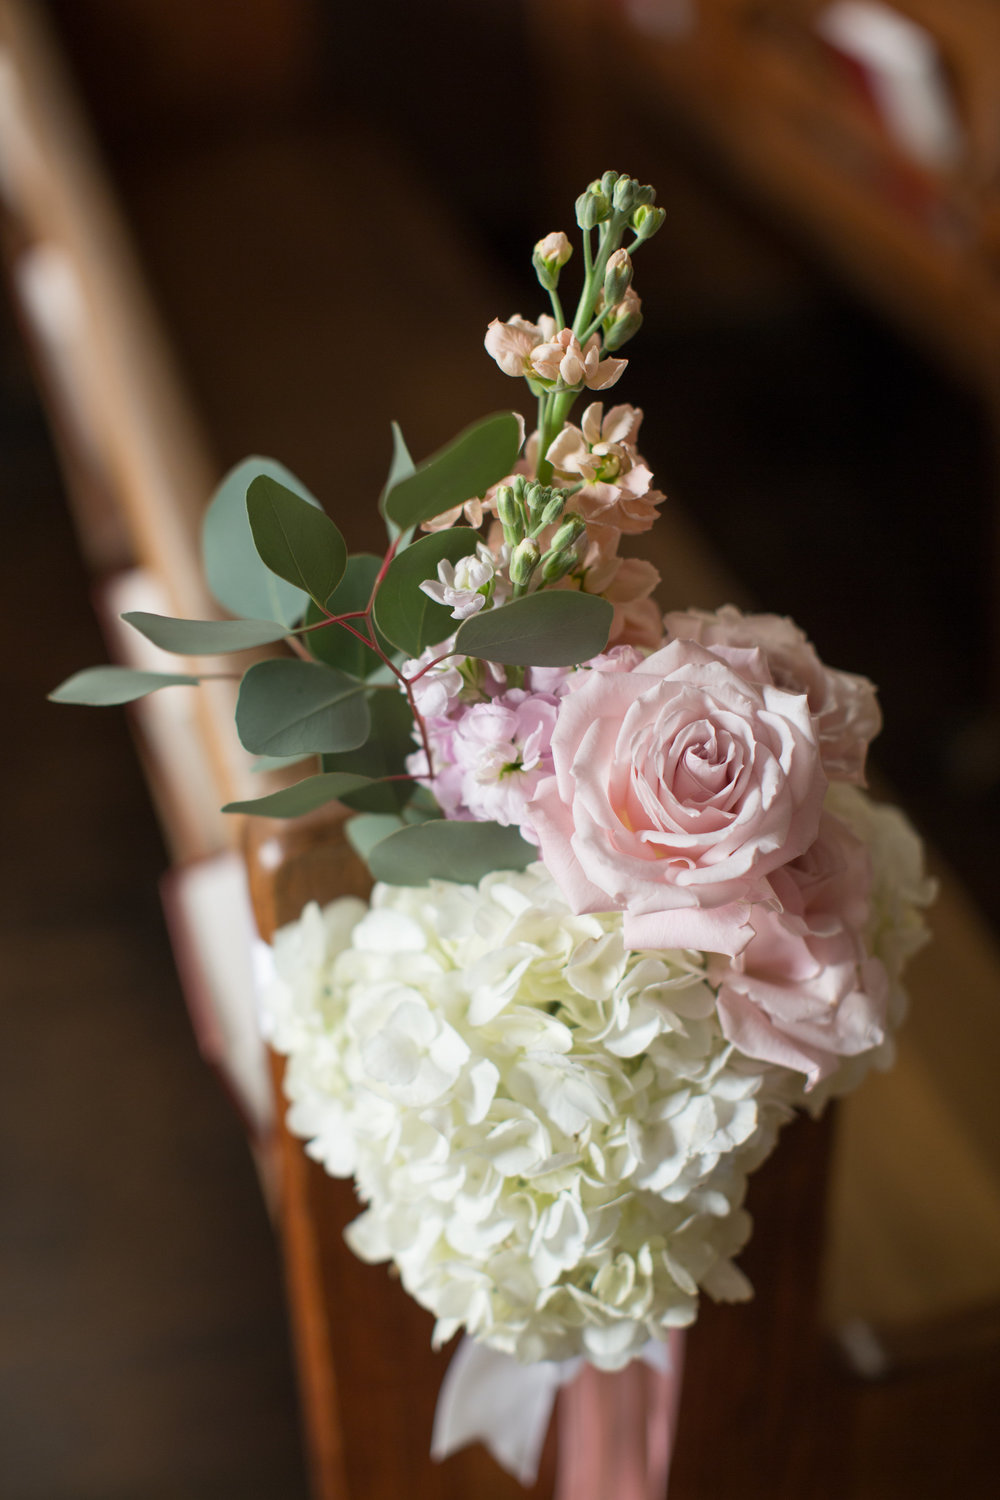 My wedding flowers. Photo by Ashley Paige Photography